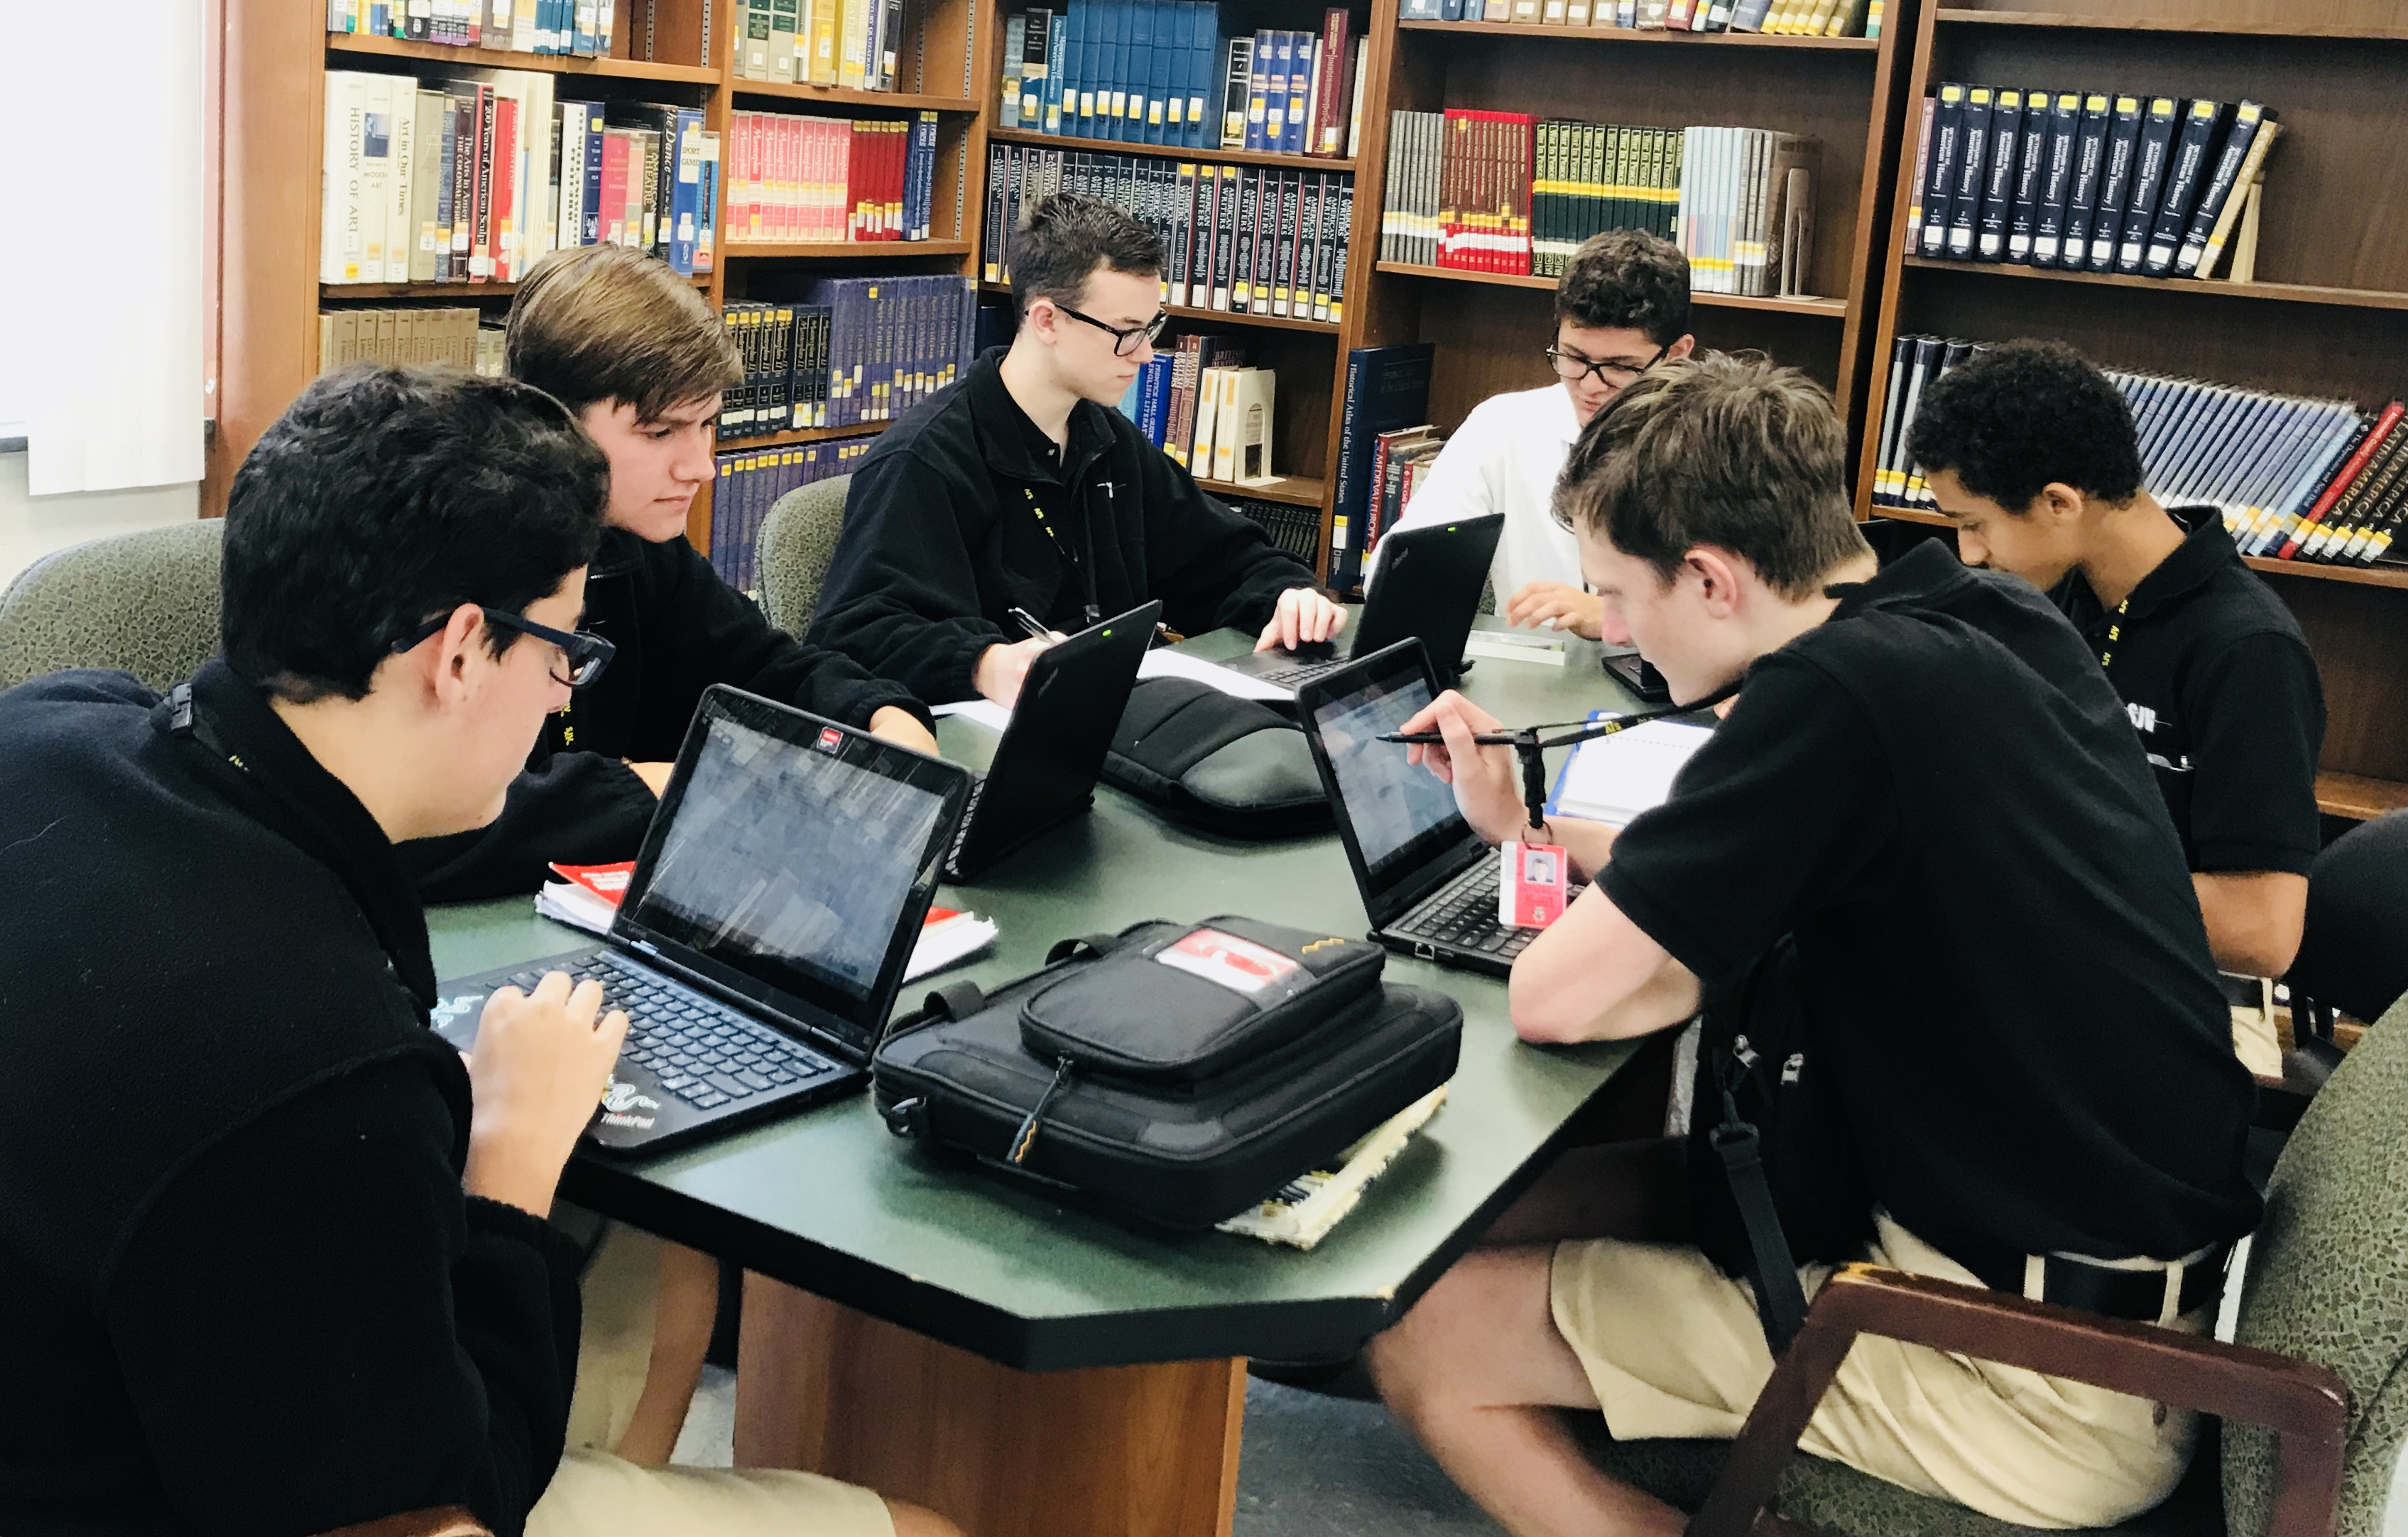 Students Studying in Library - Saint John Vianney High School